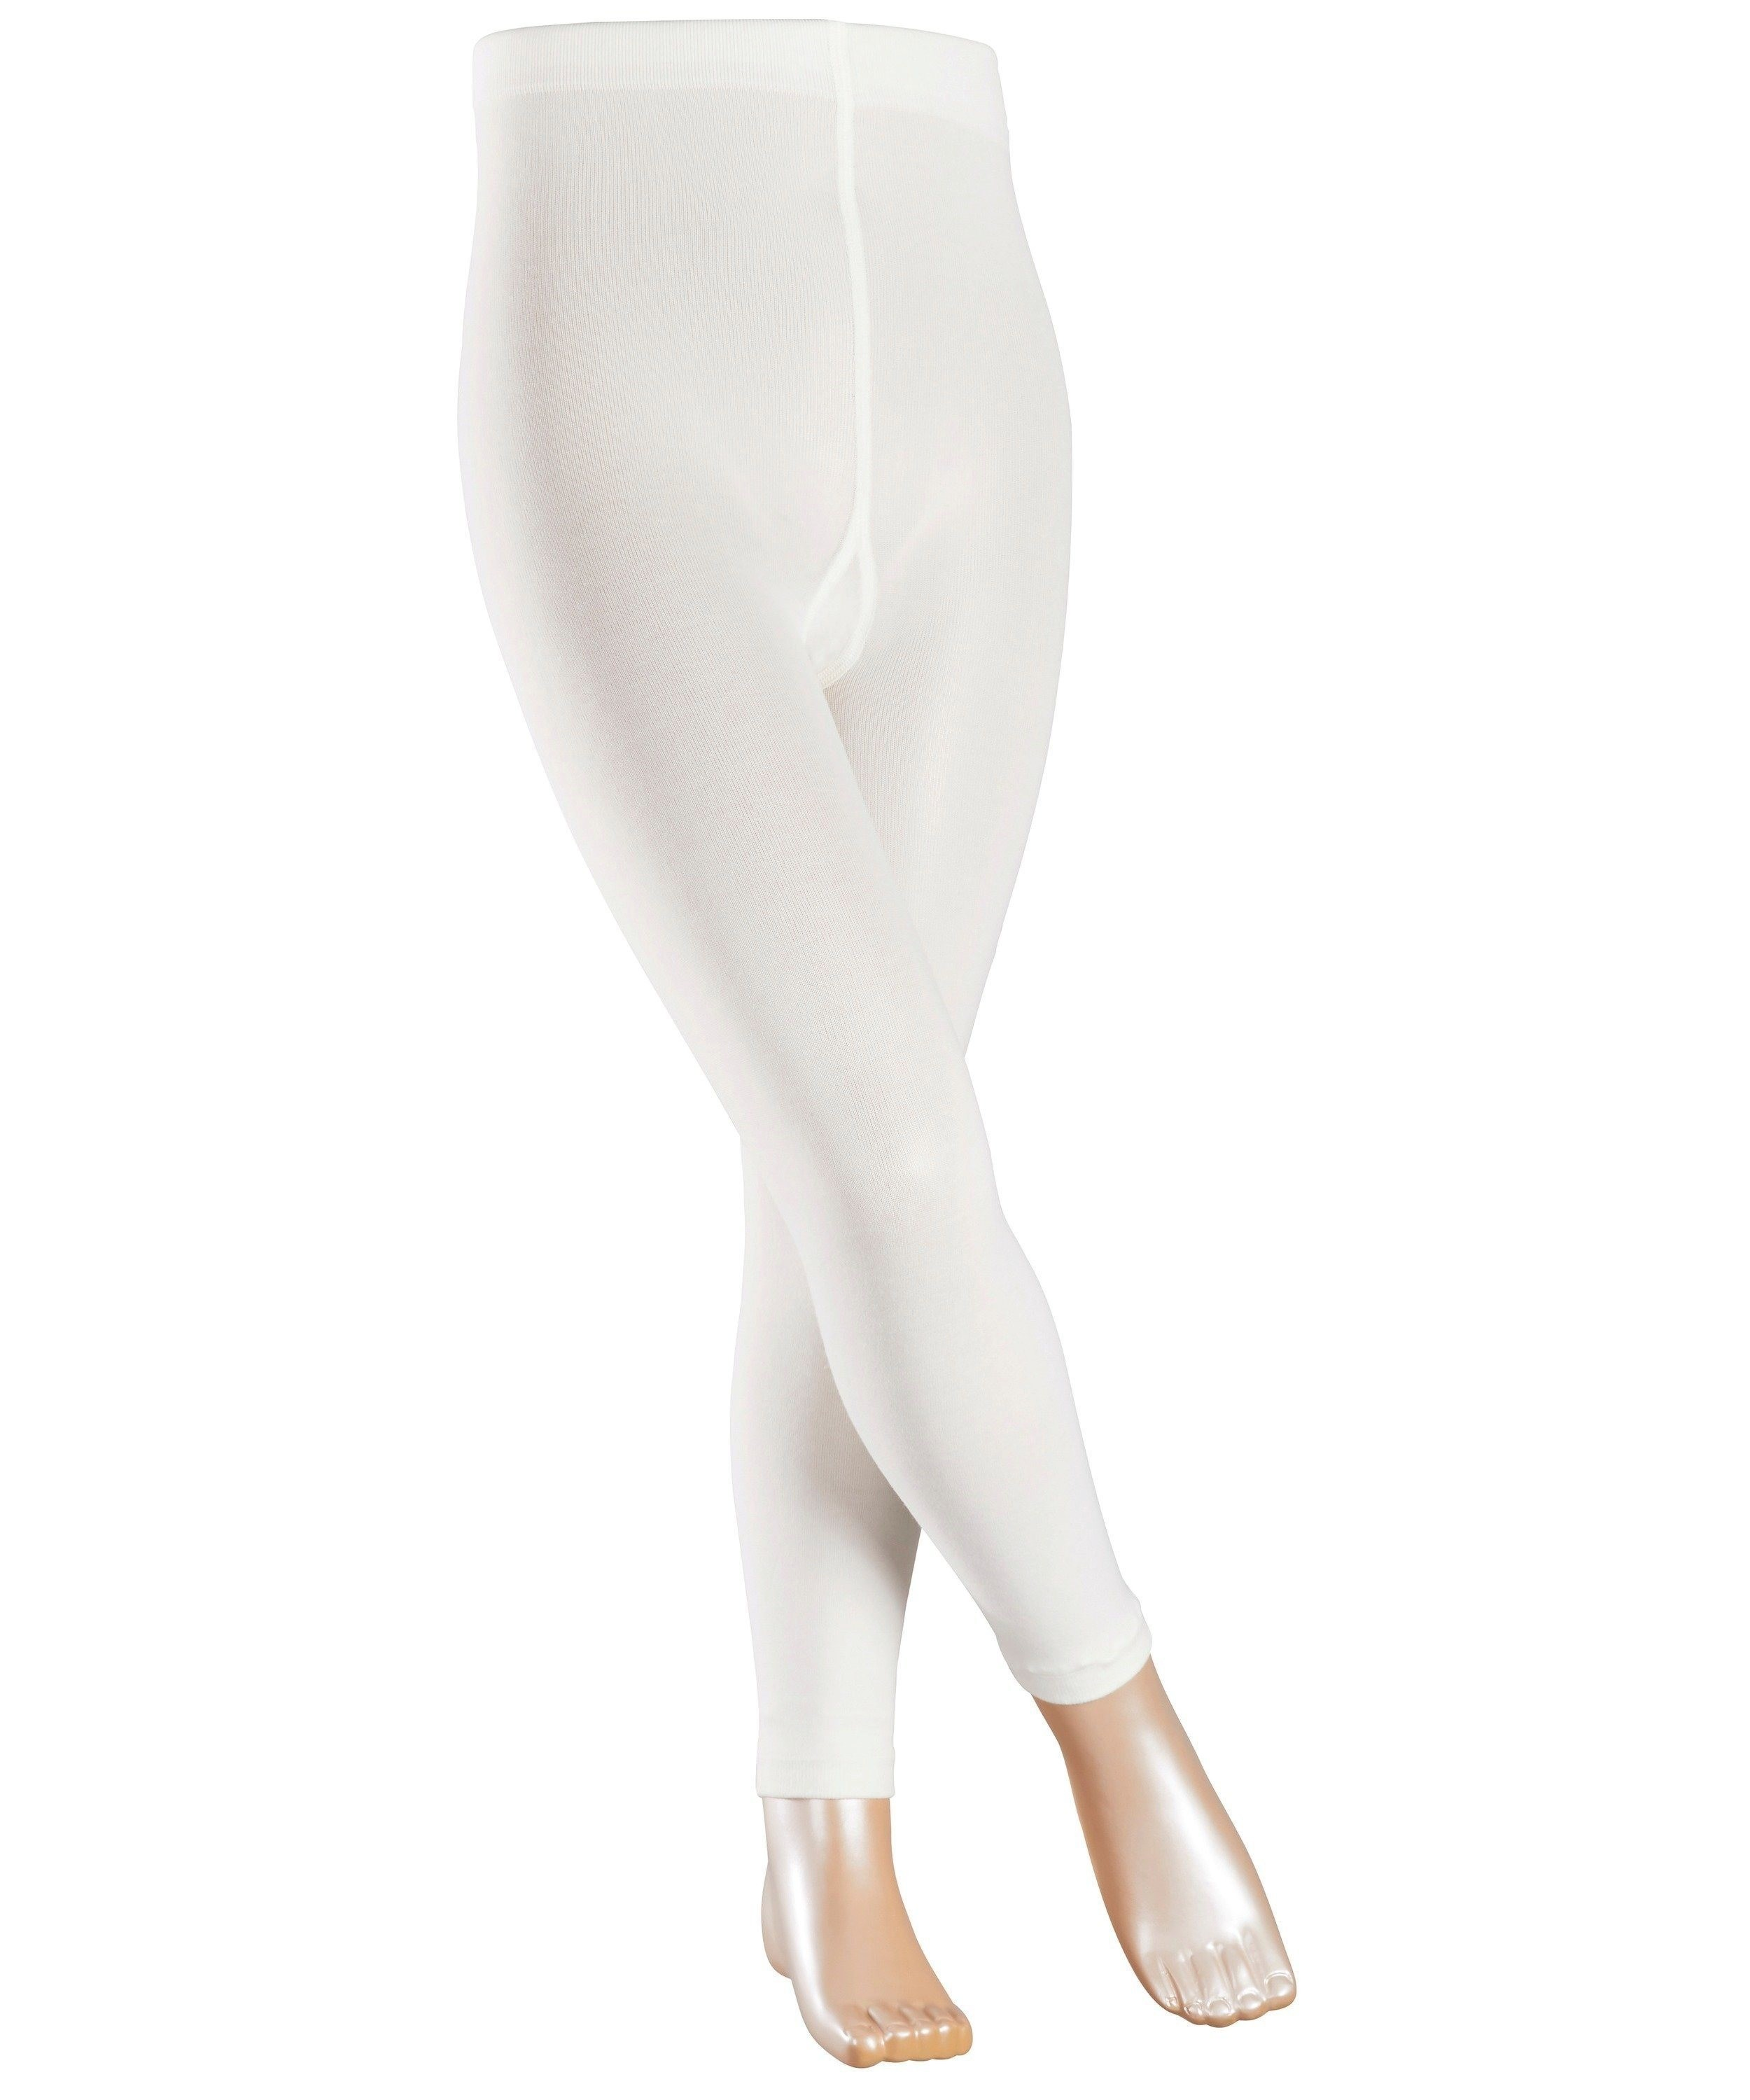 Legging stretch Enfant - Coton & Polyamide - Falke Children Cotton Touch 13830 Ecru Off-White 2040